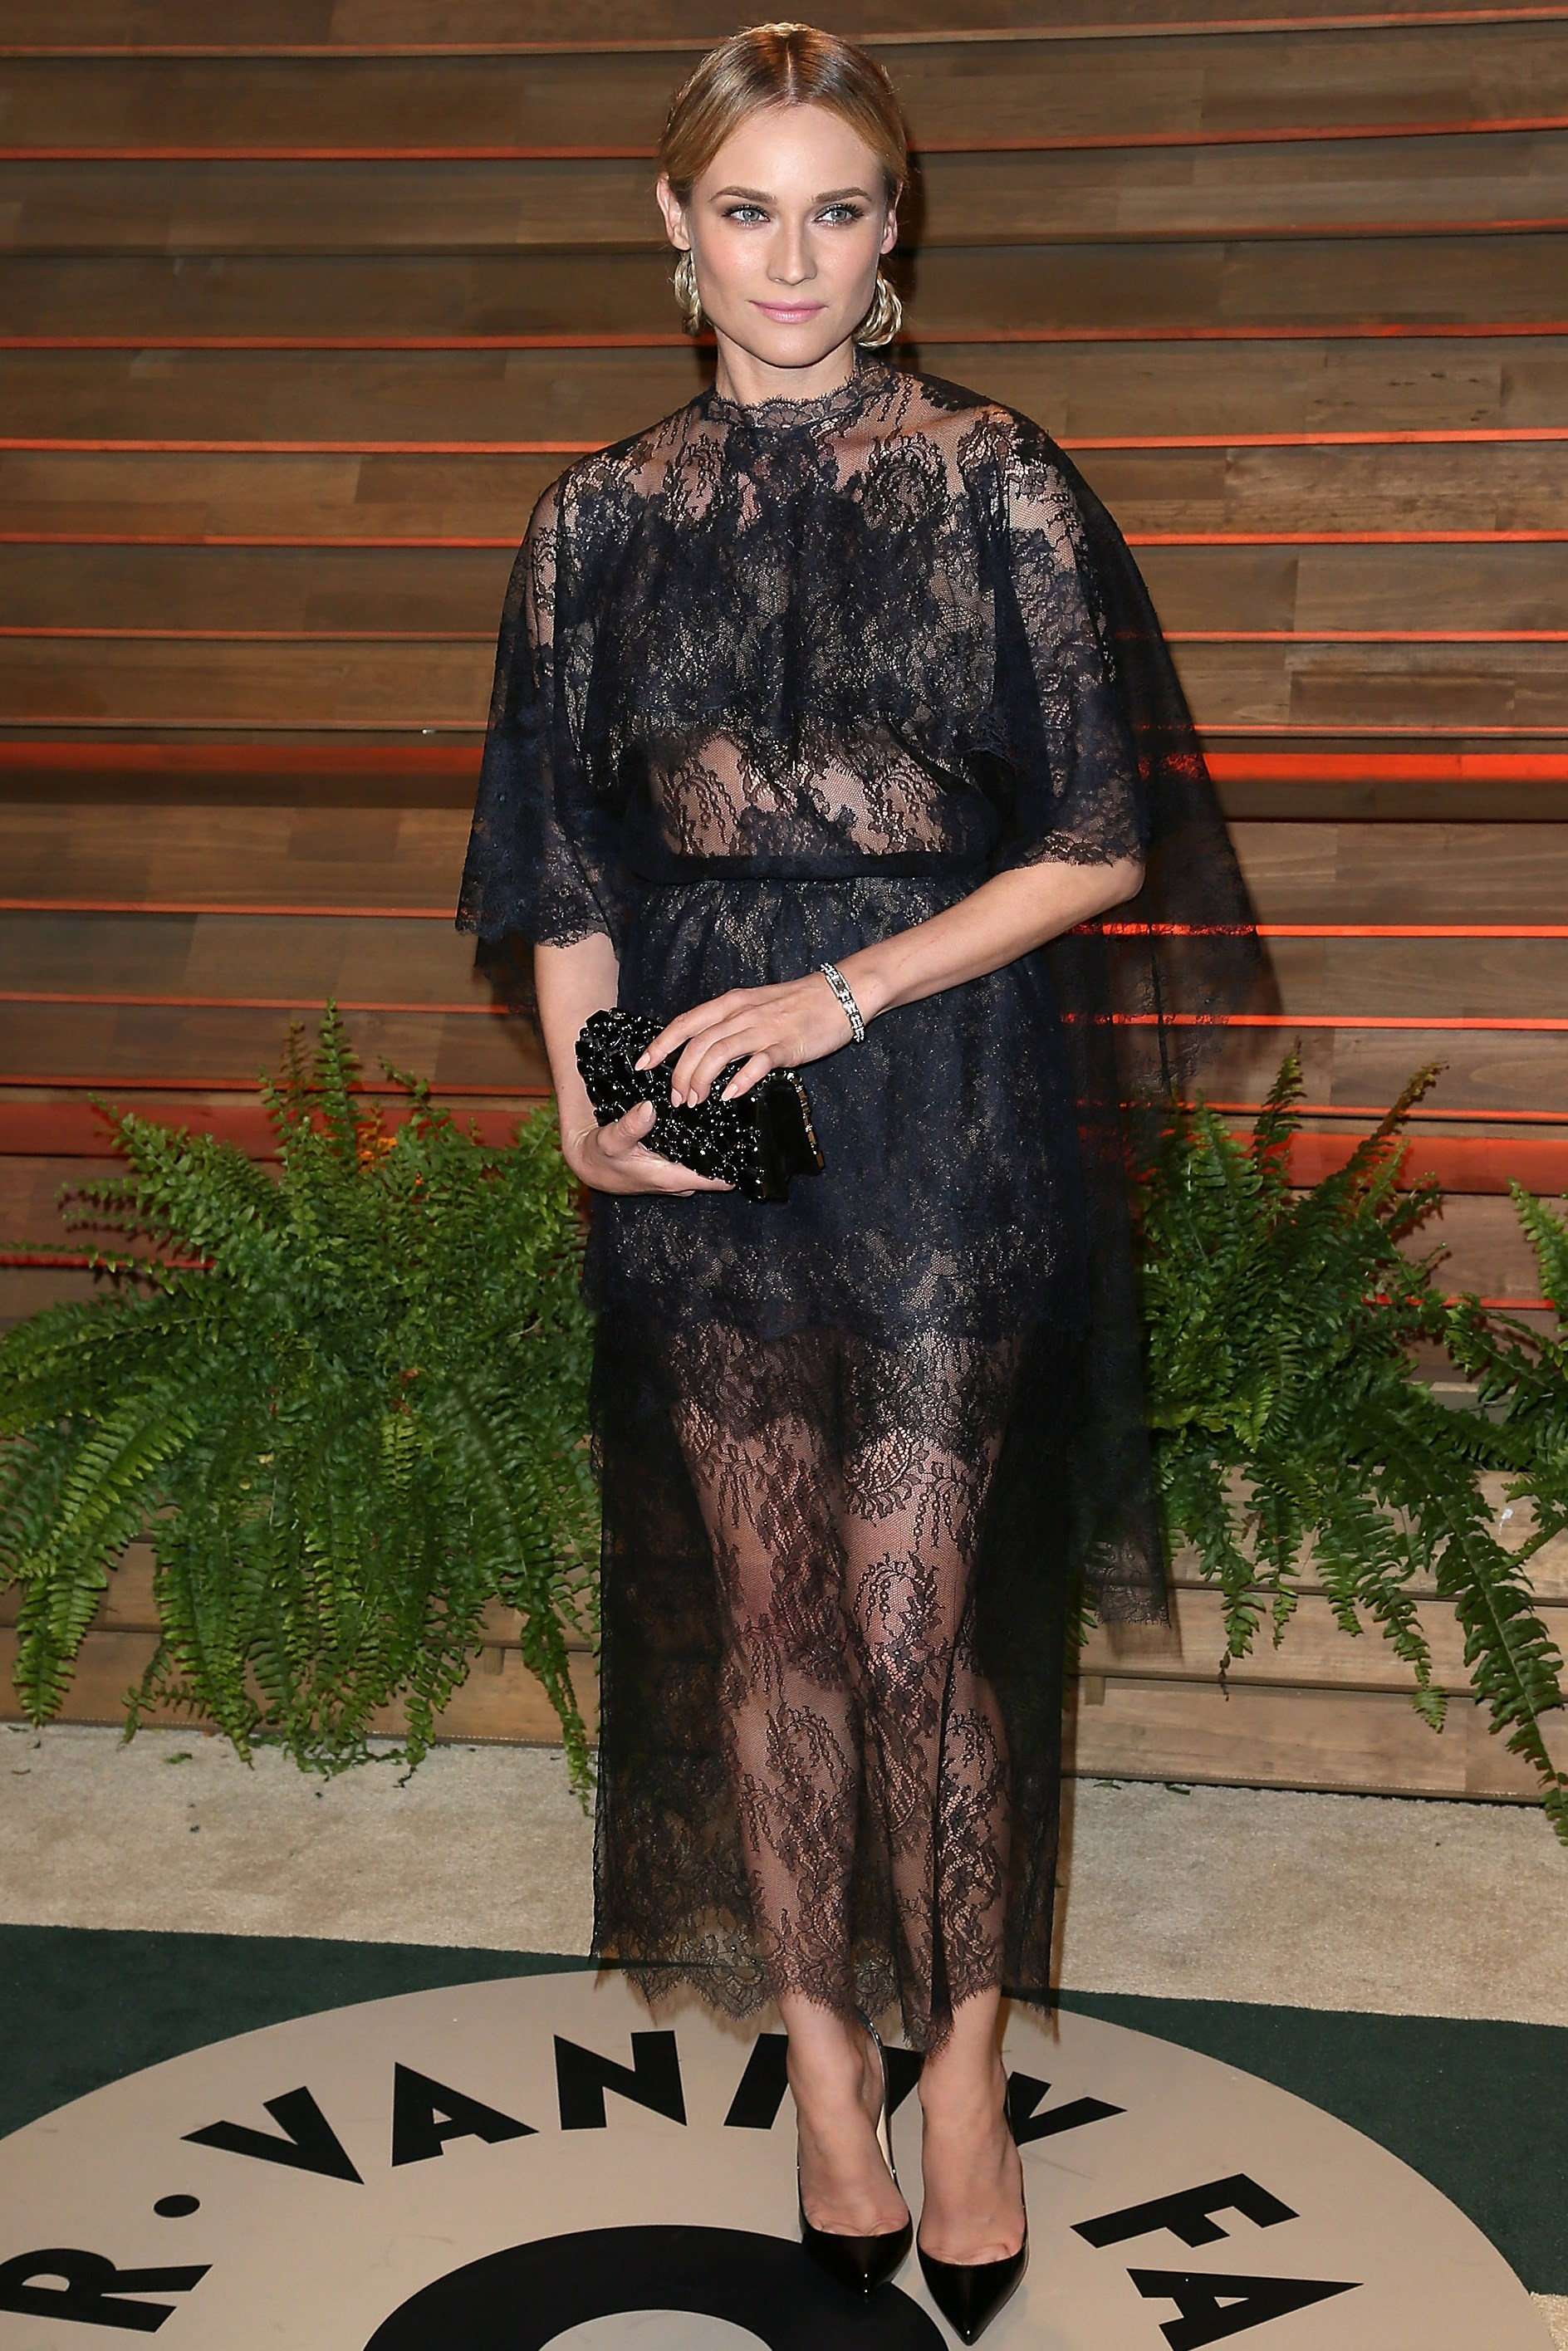 That time her in this Valentino Couture dress was at the top of The List Of Things That Are Right With The World.